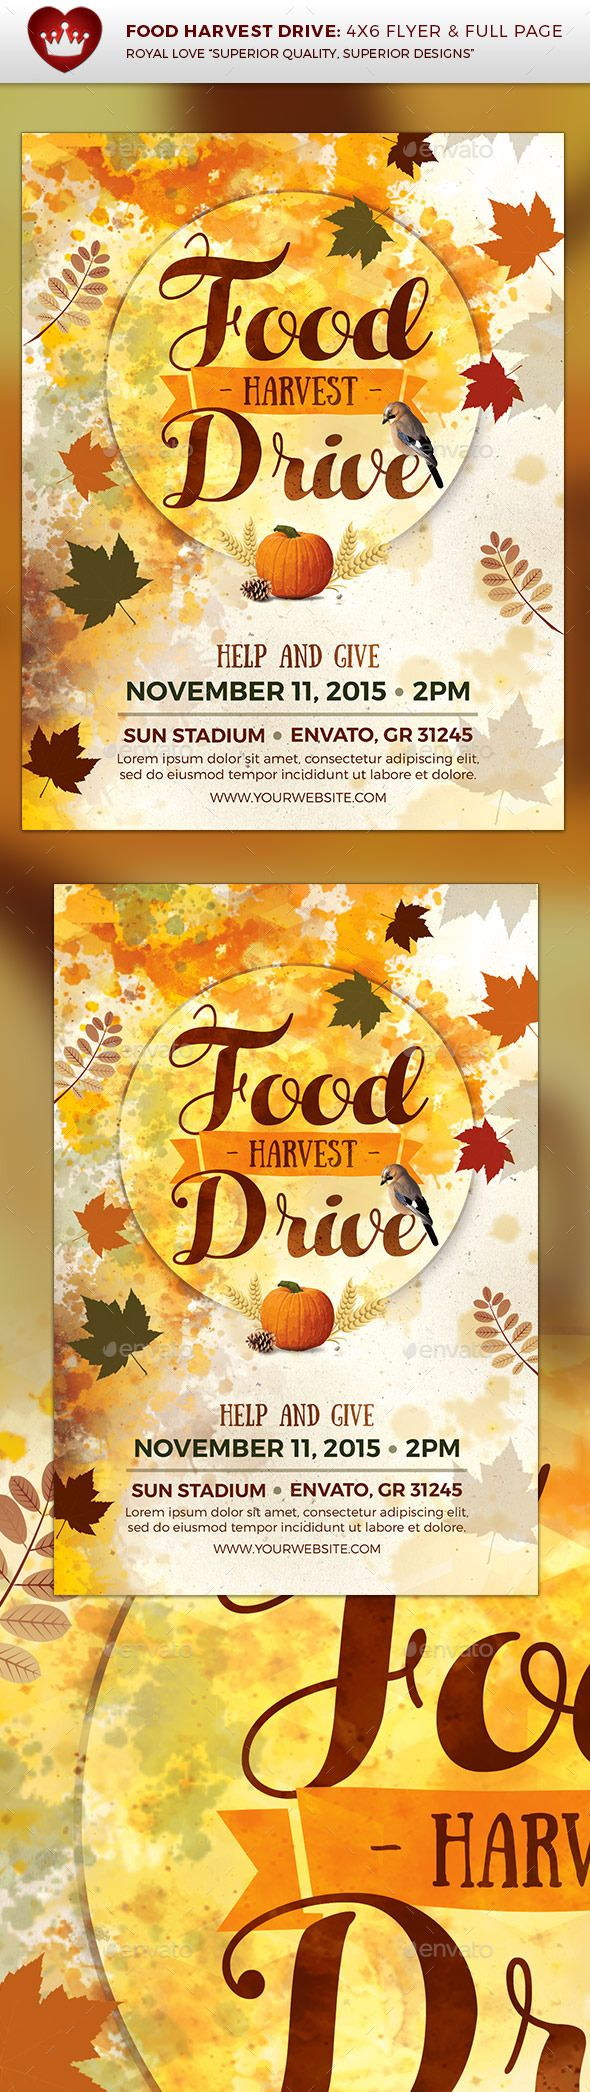 Food Harvest Drive Flyer – Help Wanted Flyer Template